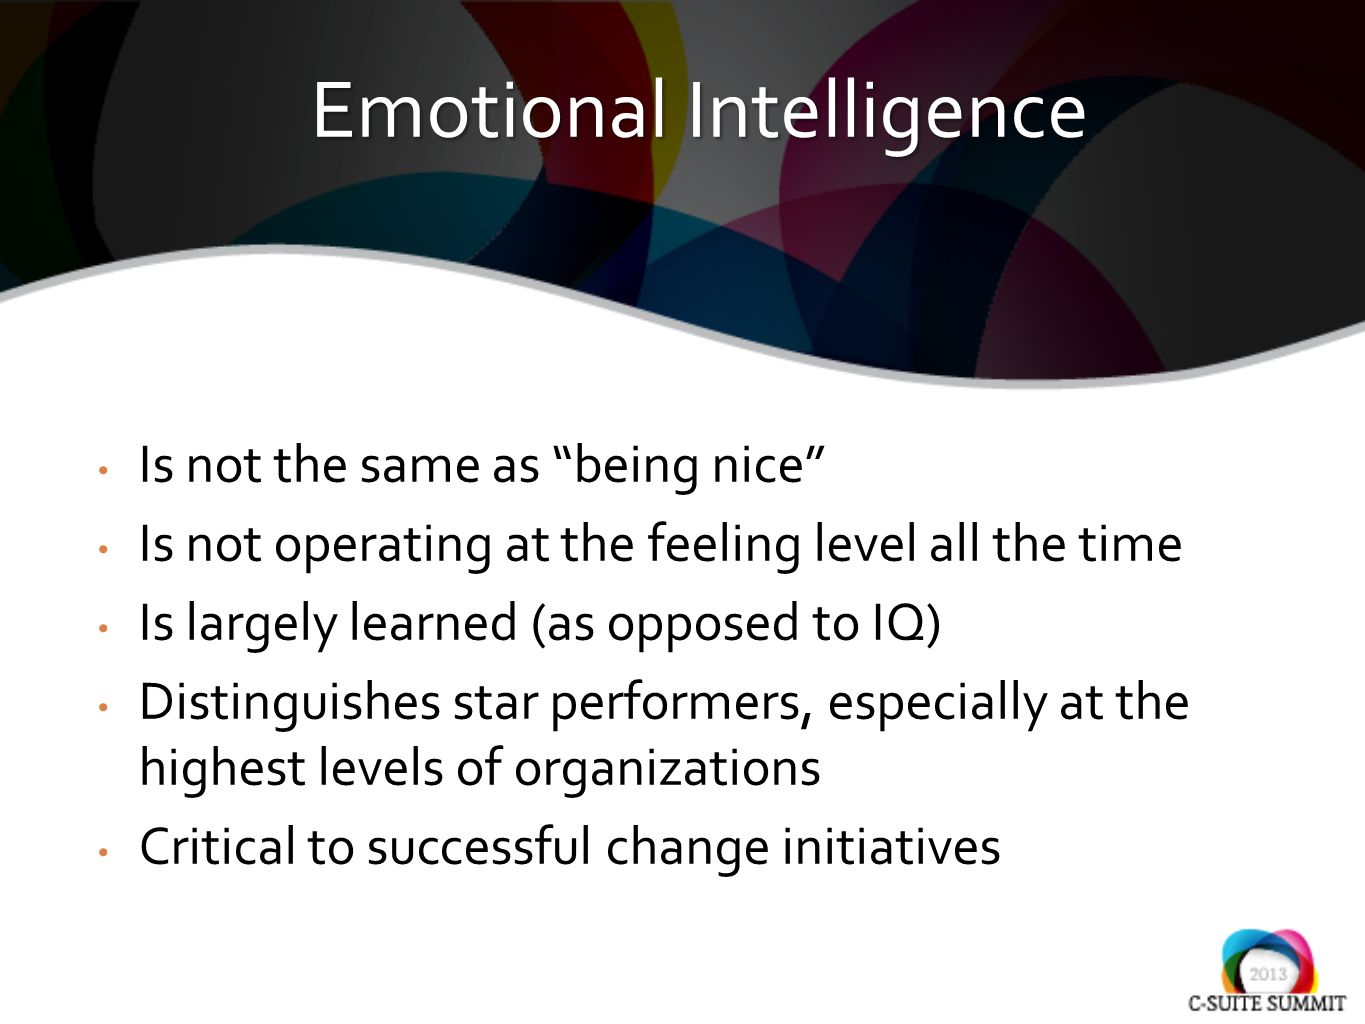 Is not the same as being nice Is not operating at the feeling level all the time Is largely learned (as opposed to IQ) Distinguishes star performers, especially at the highest levels of organizations Critical to successful change initiatives Emotional Intelligence